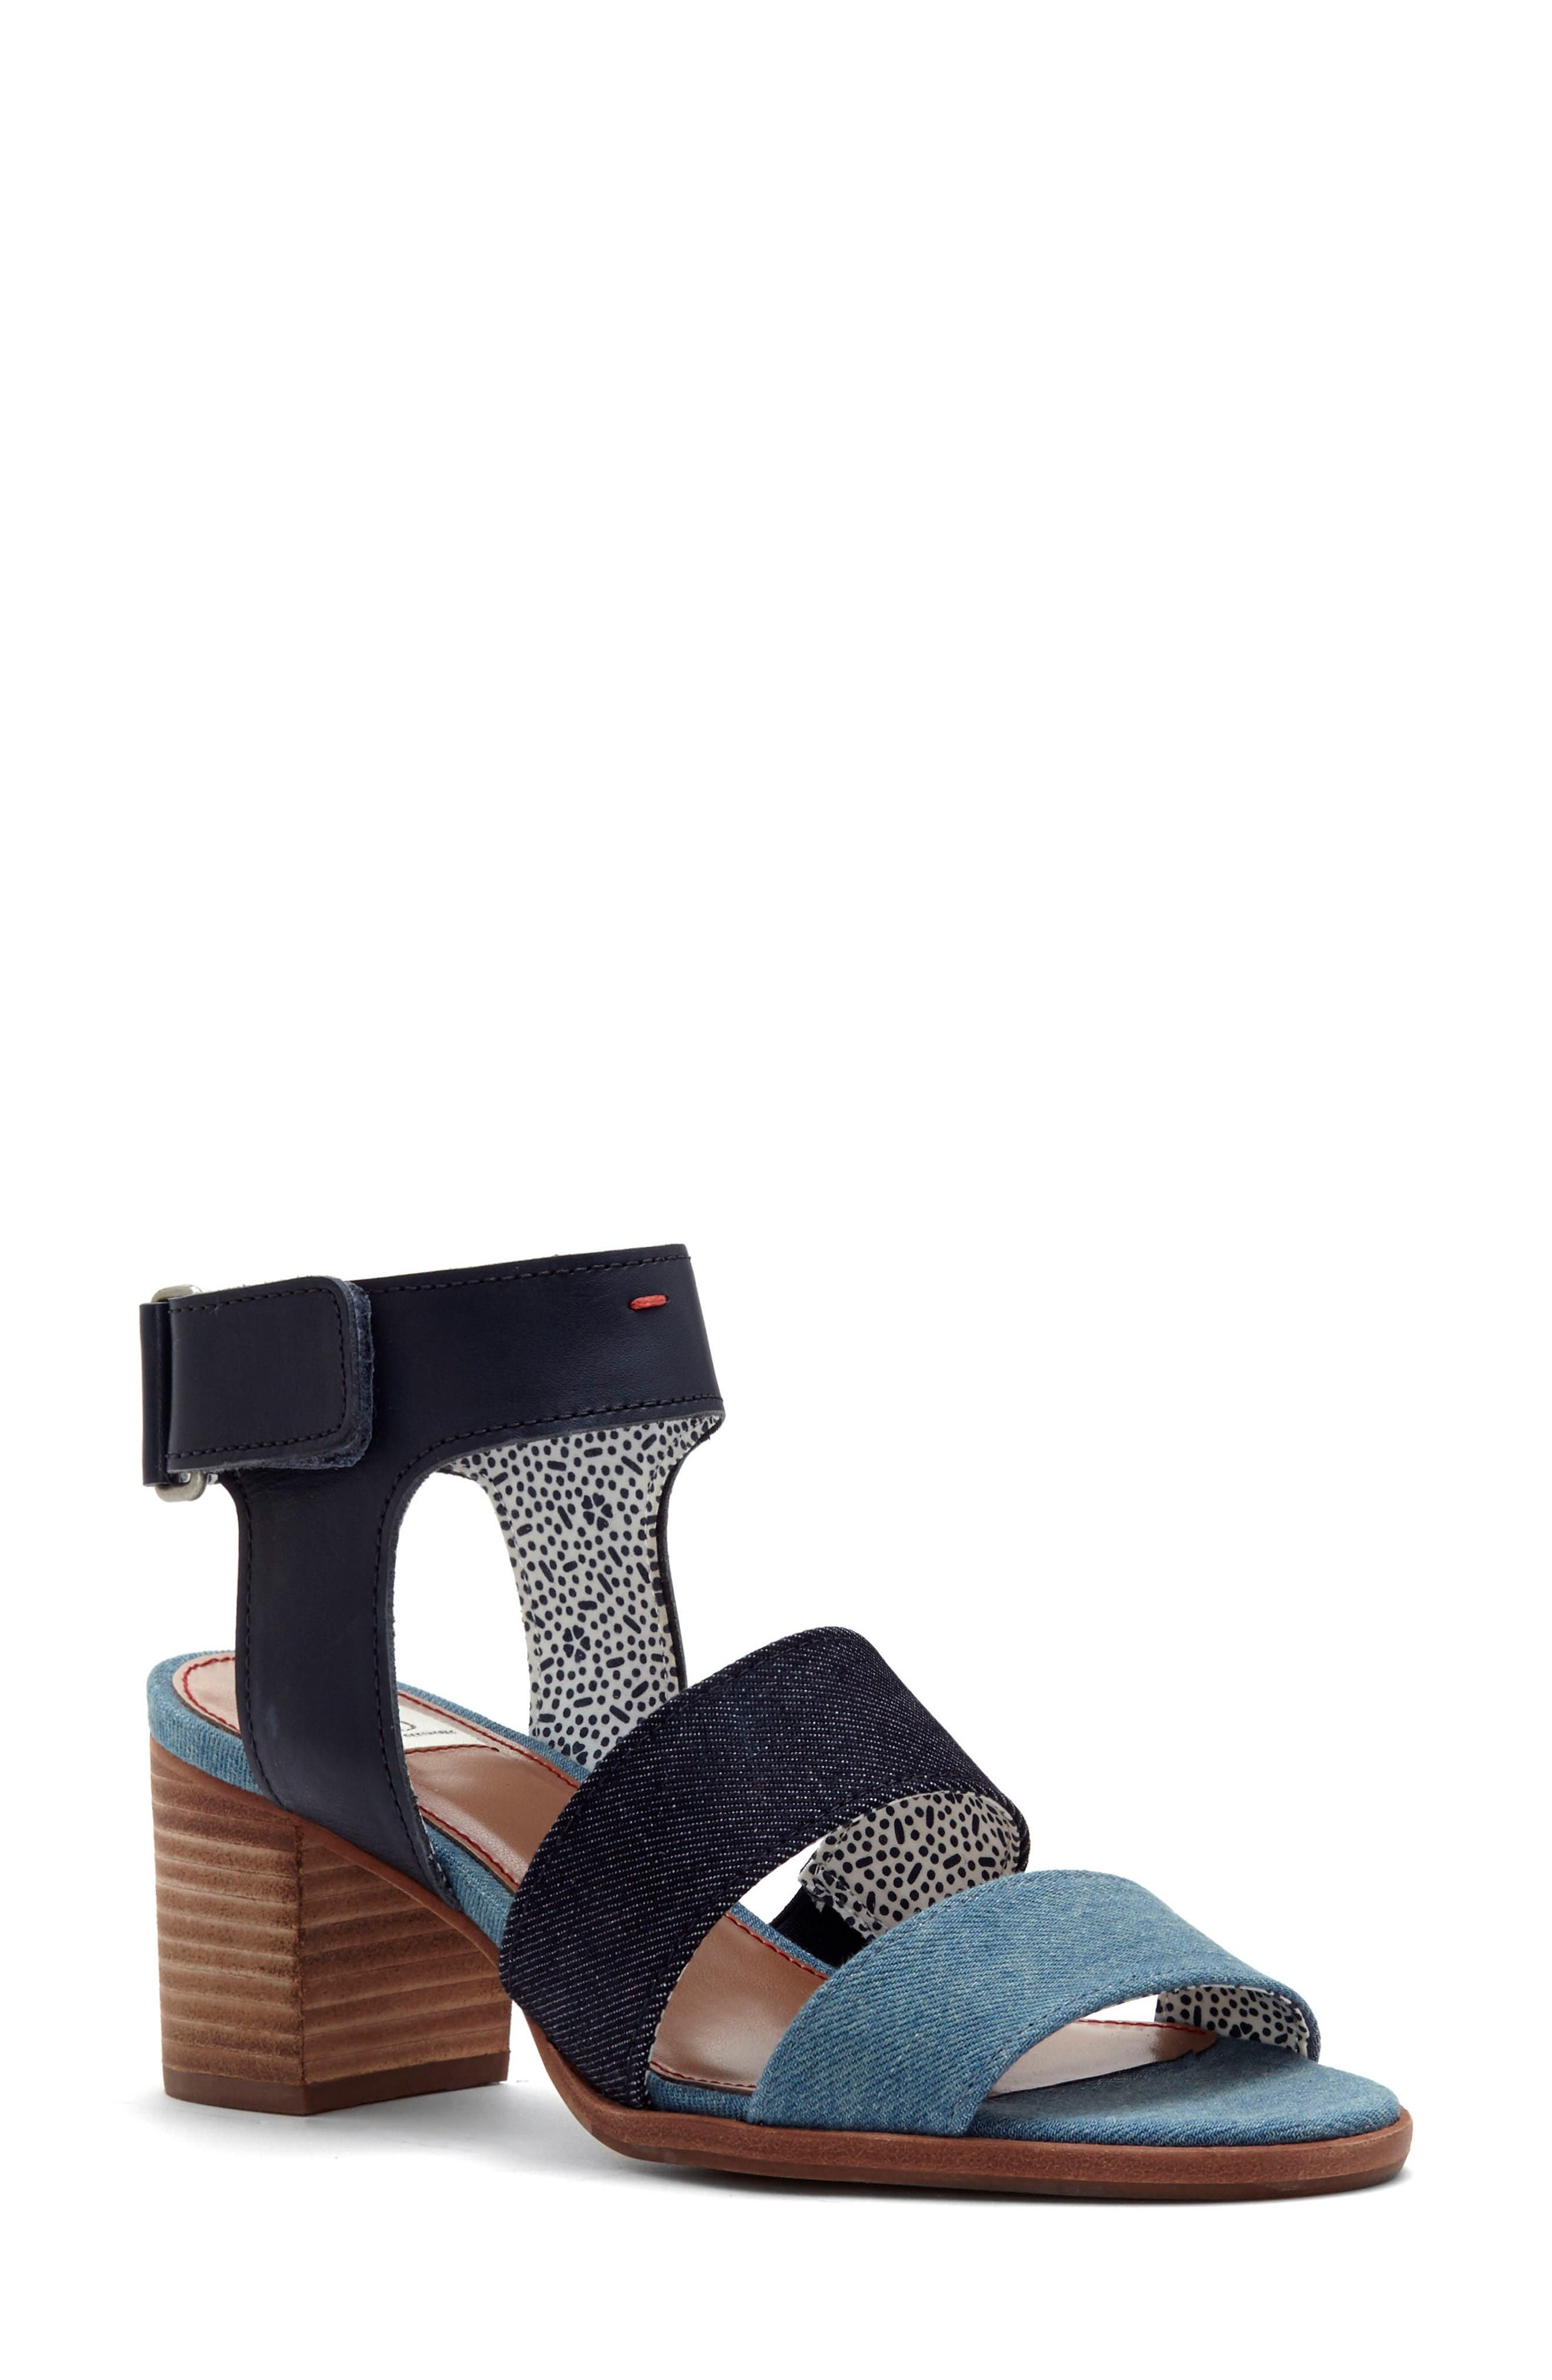 Alternate Image 1 Selected - ED Ellen DeGeneres Tahni Strappy Sandal (Women)